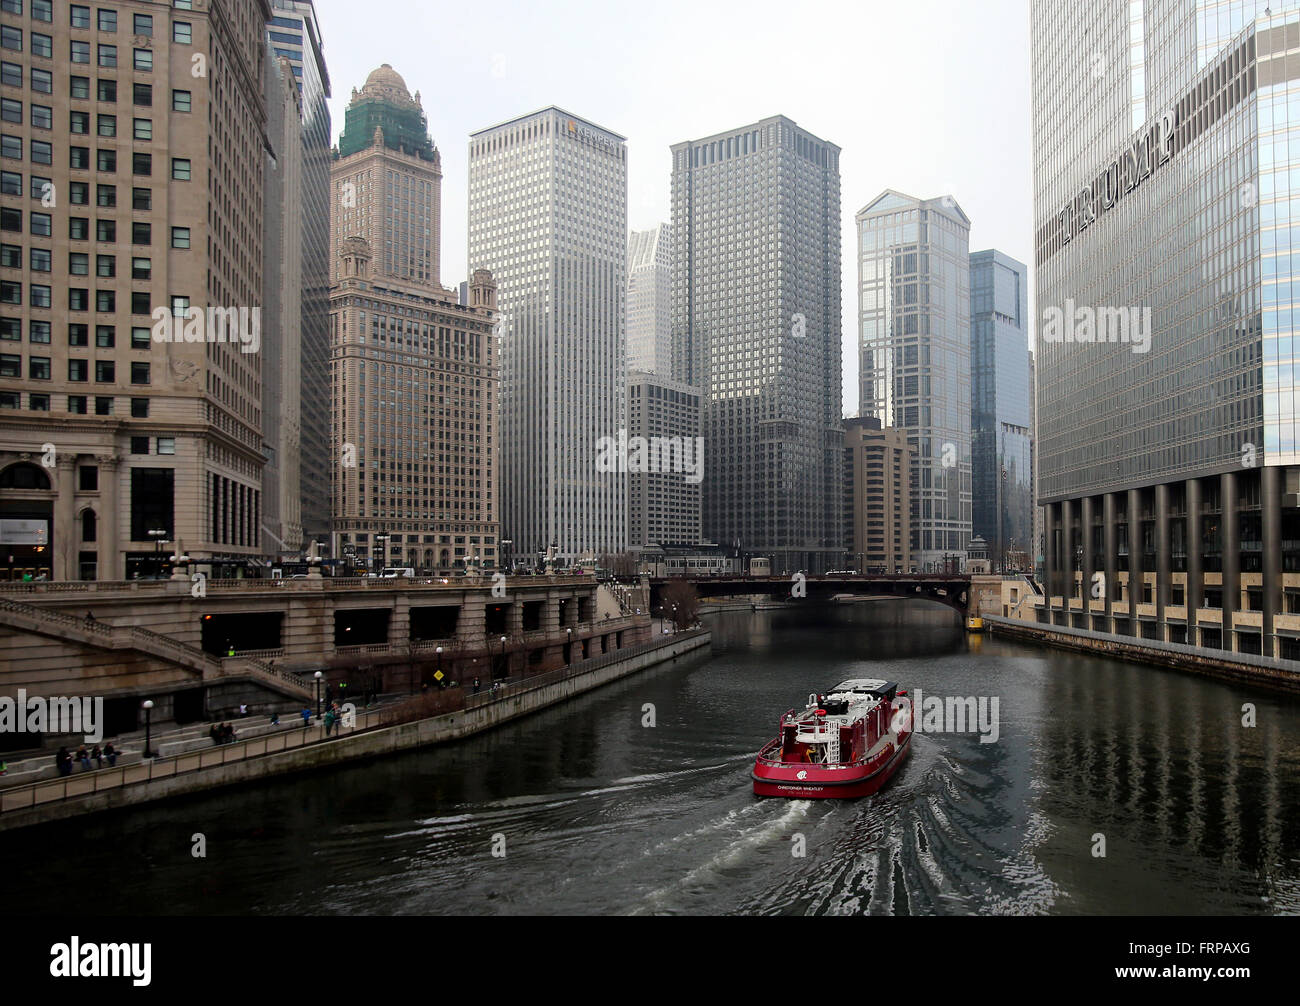 A boat sails up the Chicago River as seen from the DuSable Bridge on Michigan Avenue in Chicago, Illinois, USA - Stock Image